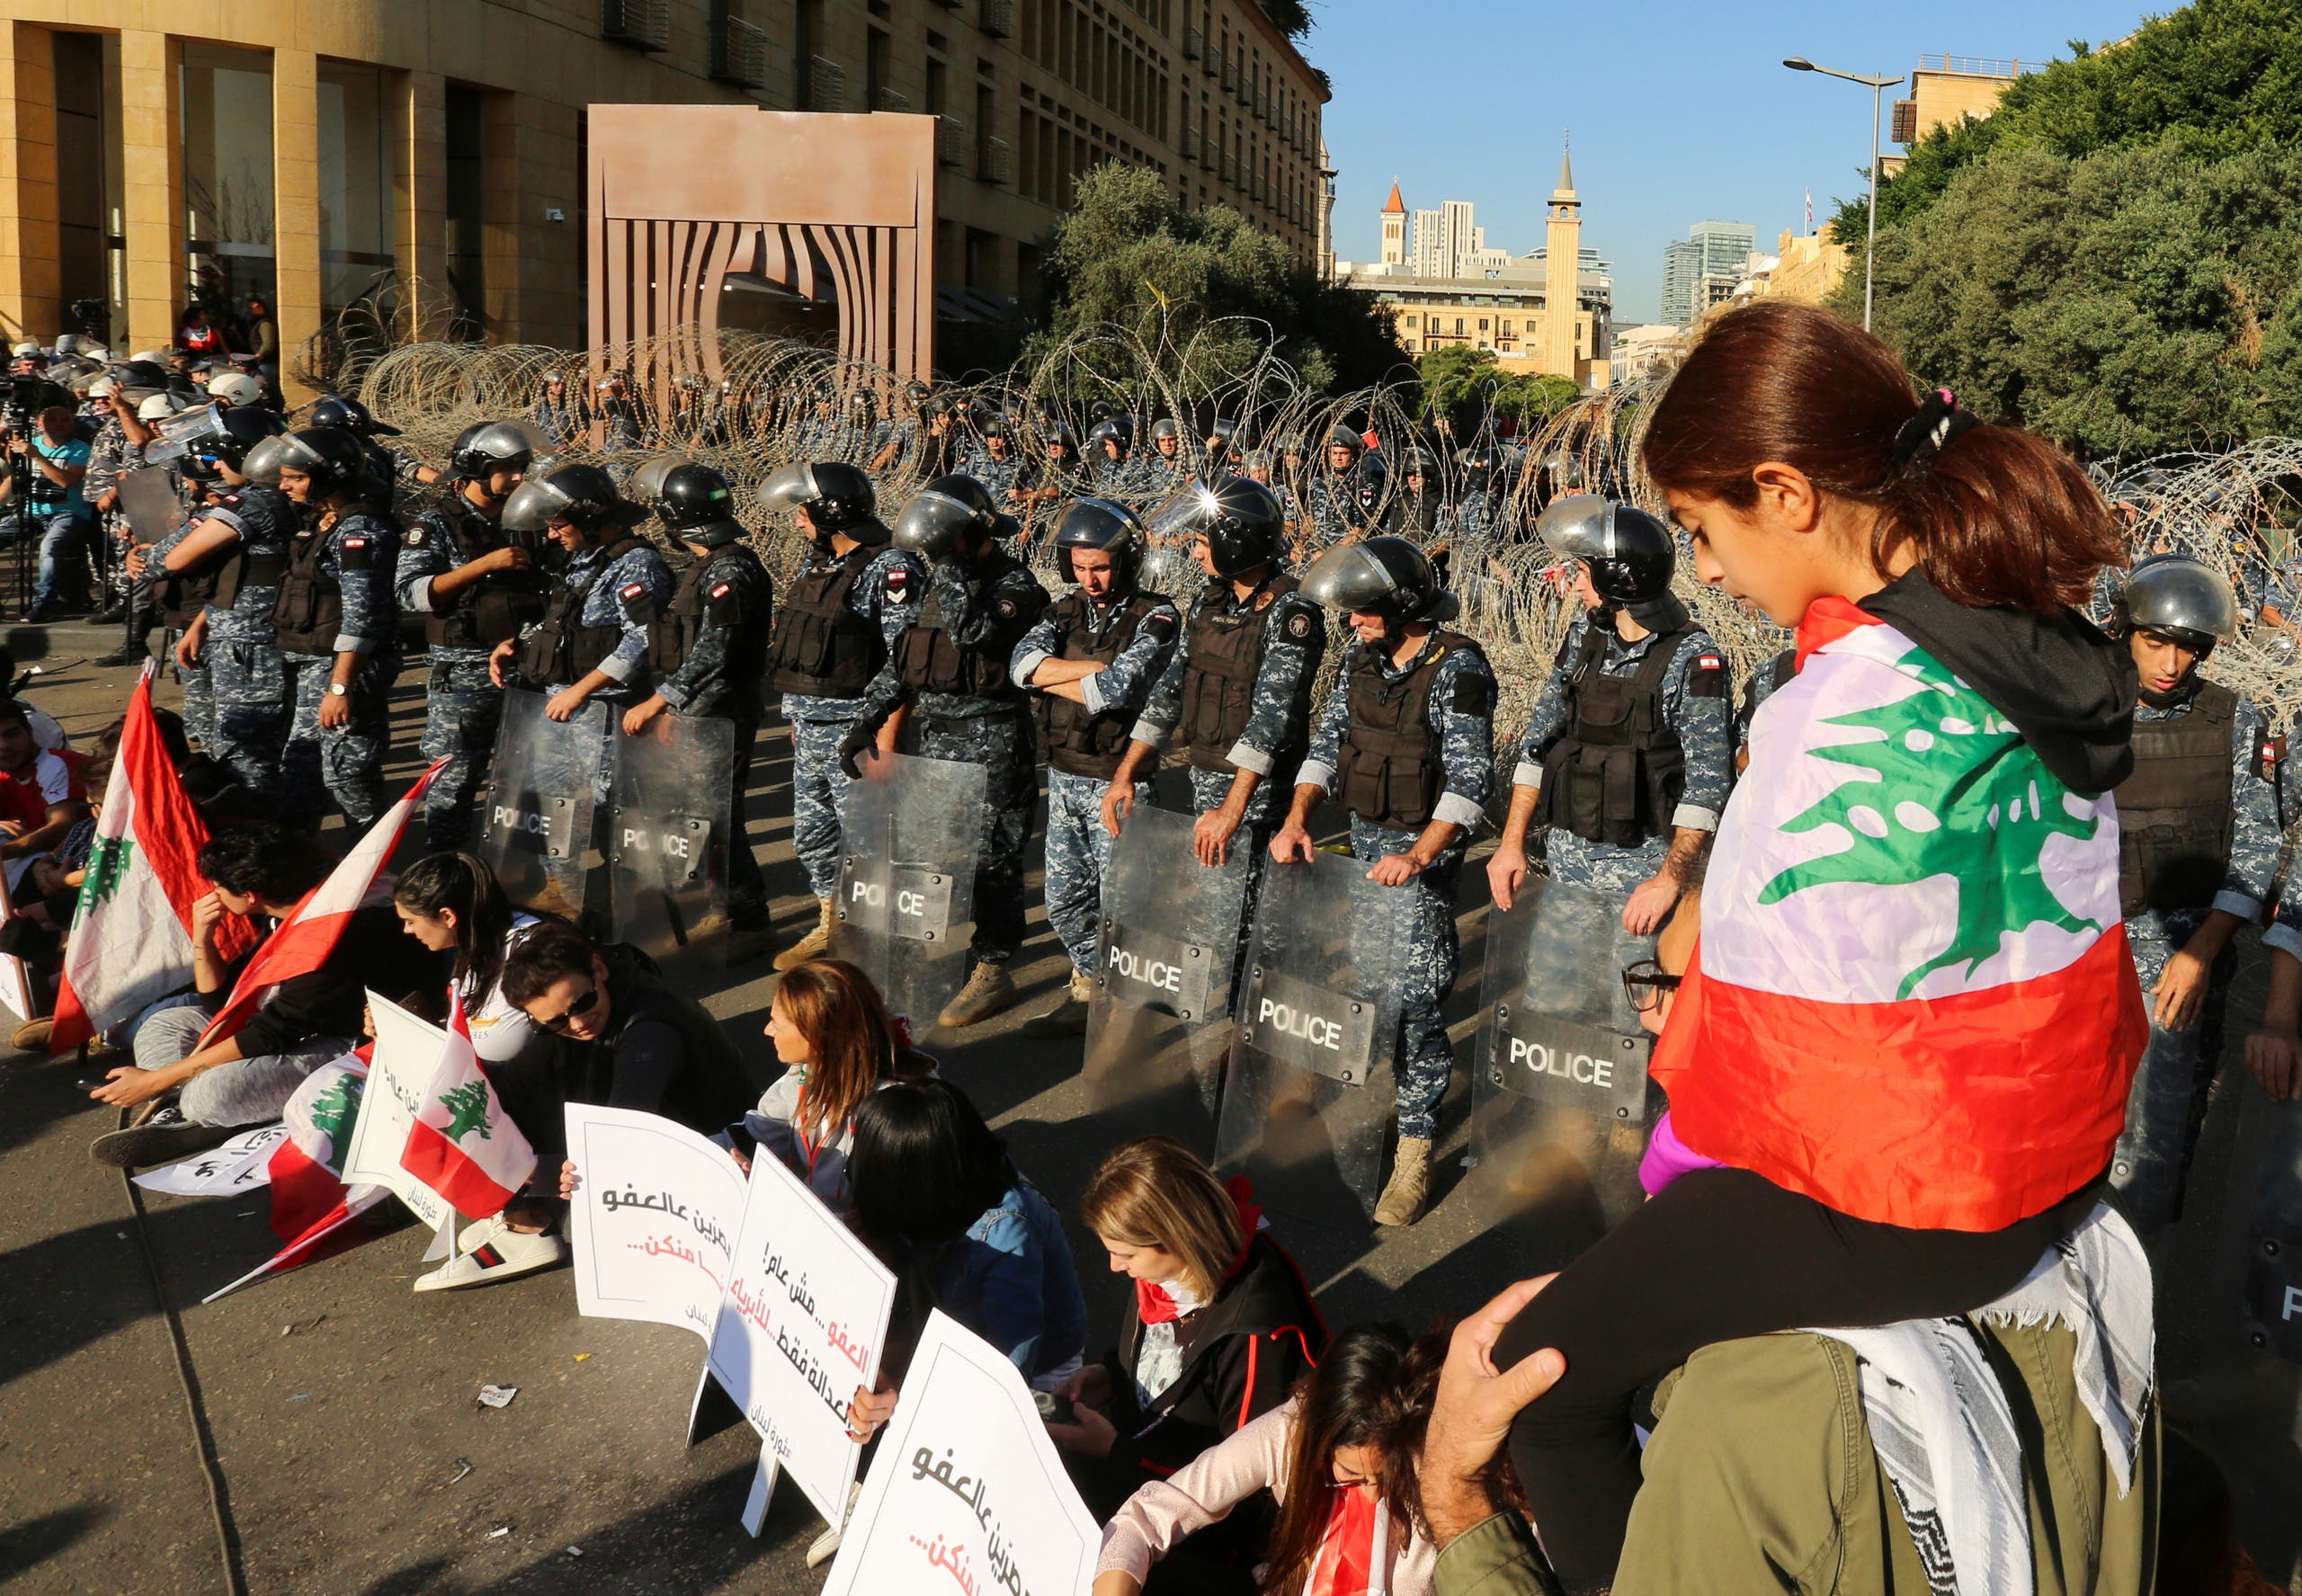 A girl has the national flag draped over her shoulders as riot police stand guard, during the ongoing anti-government protest, in Beirut, Lebanon, November 19, 2019. (Reuters)